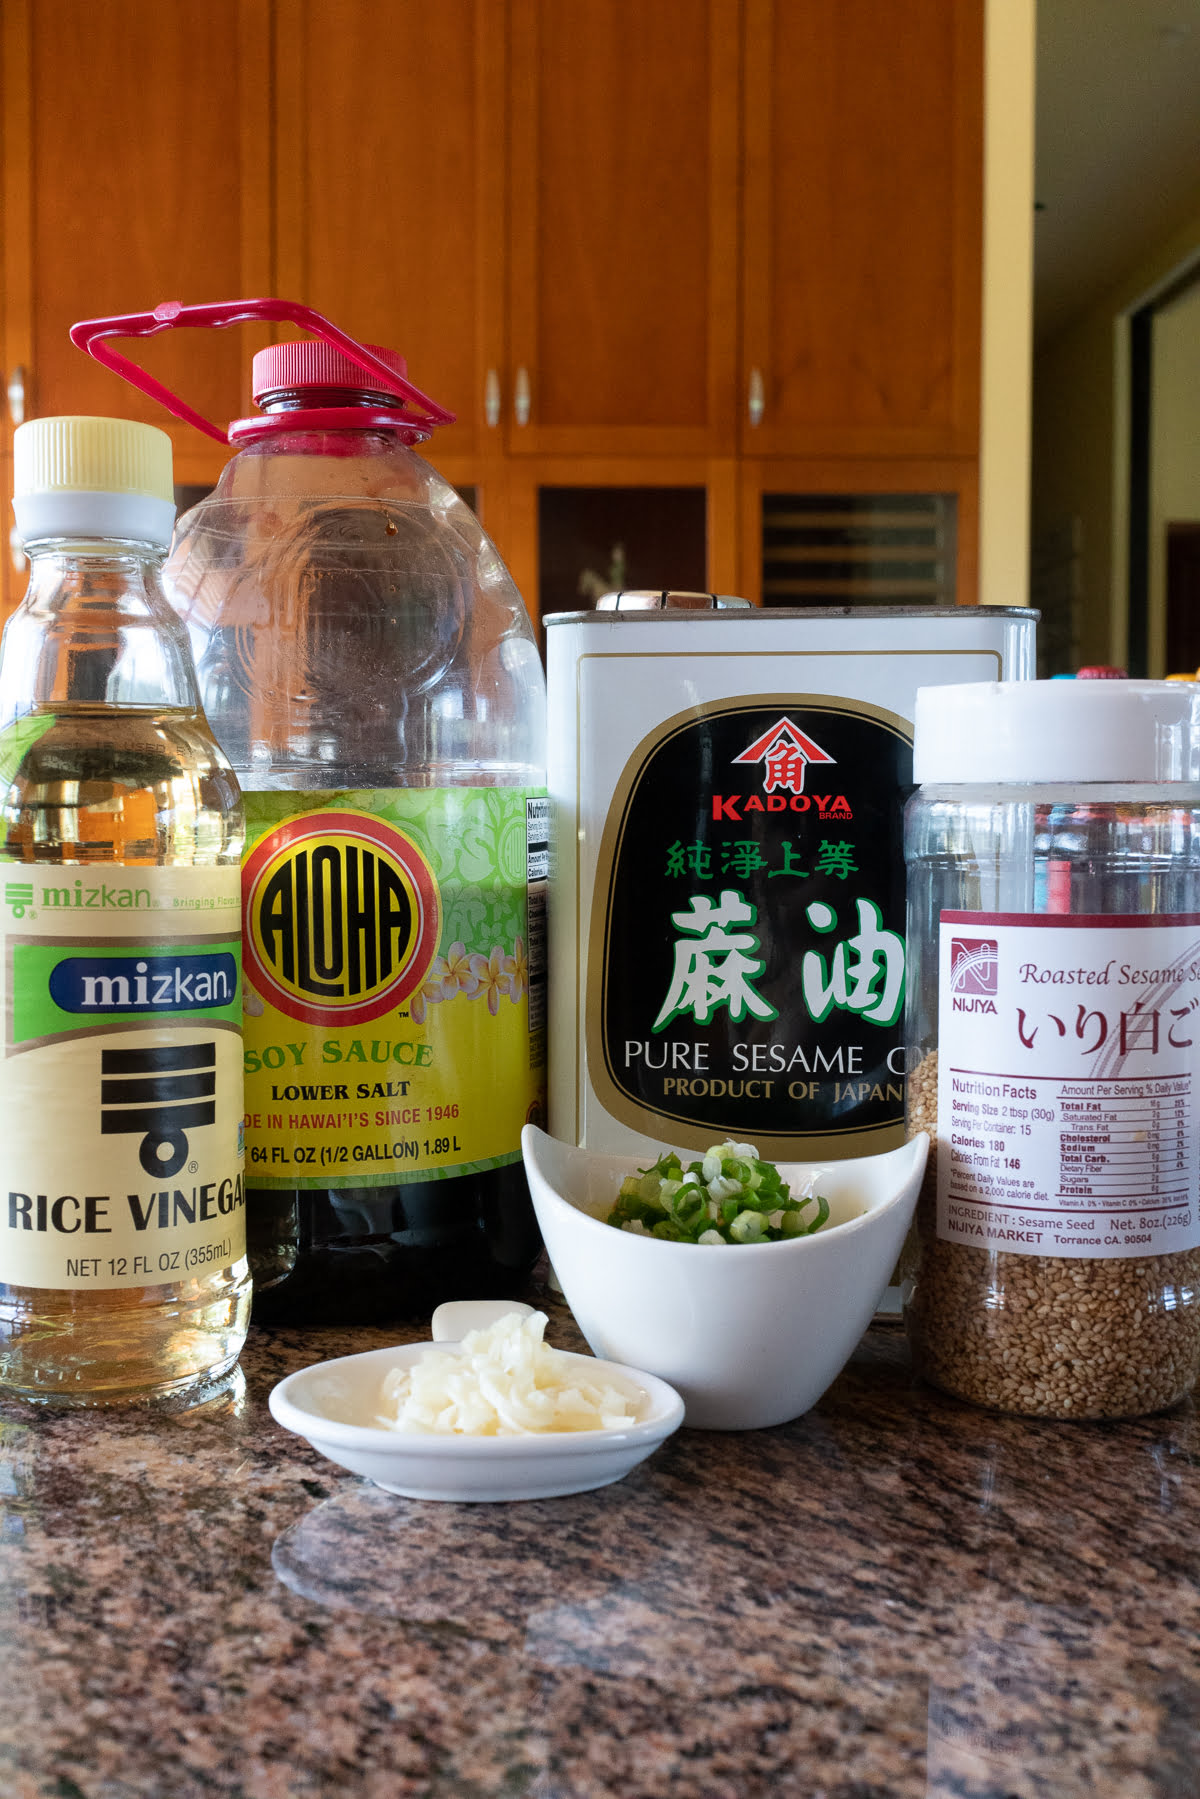 Ingredients for meat jun dipping sauce (soy sauce, rice vinegar, sesame oil, garlic cloves, and green onions).